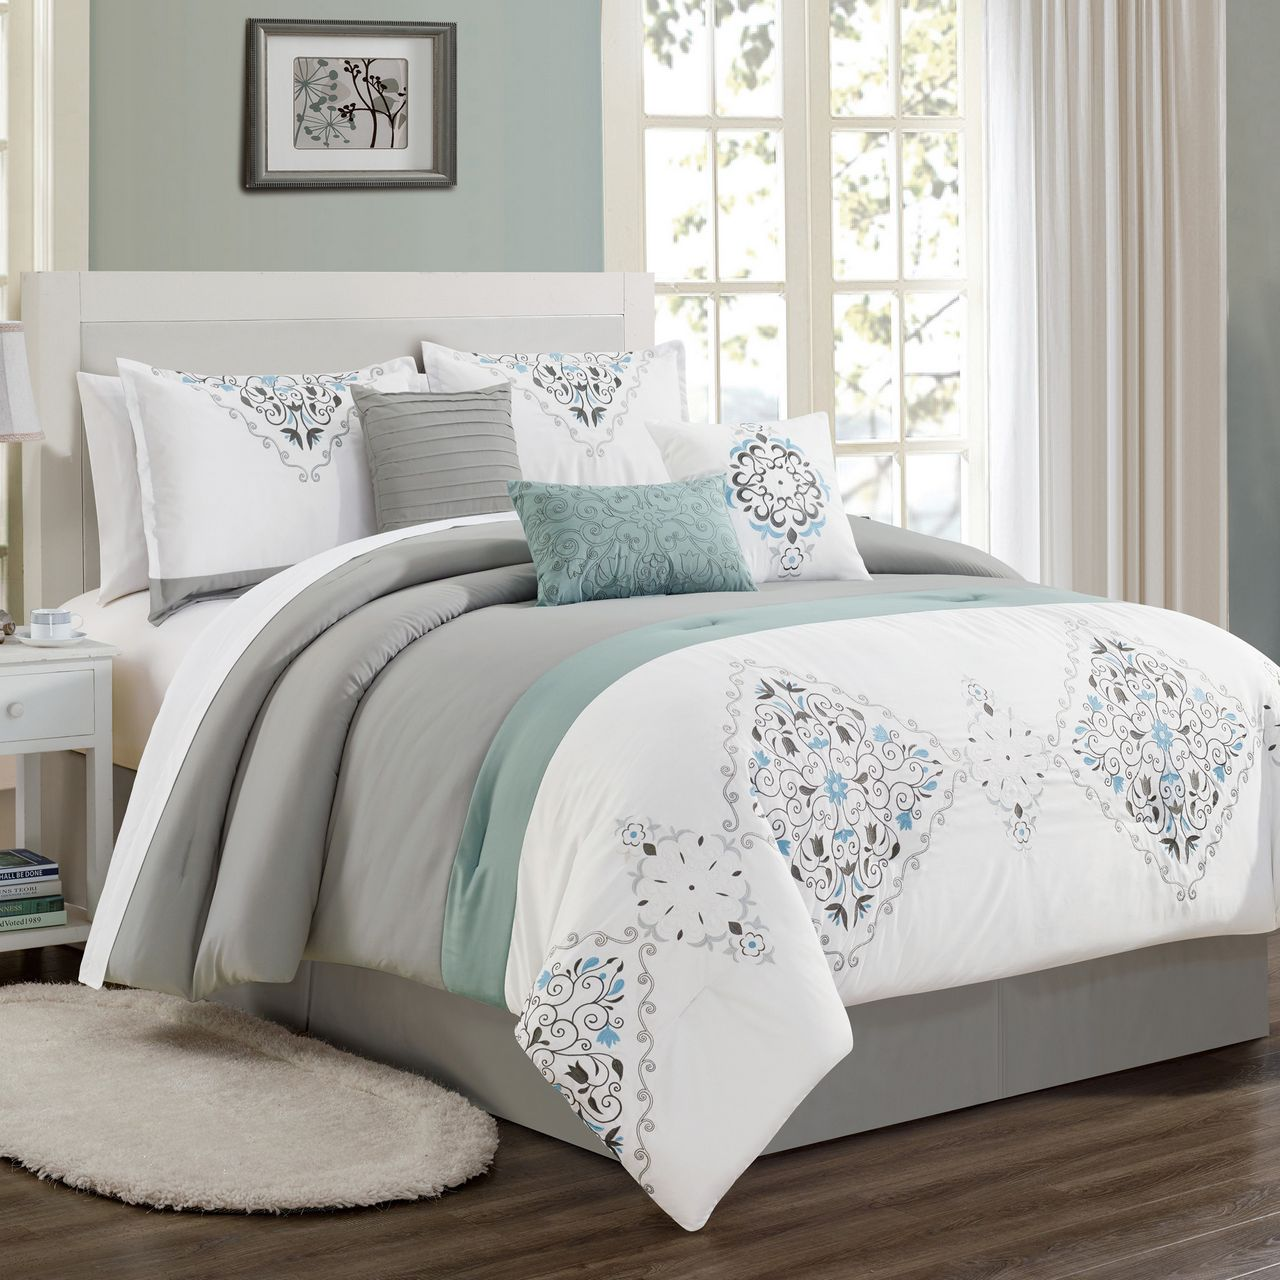 White Gray And Red Bedroom Ideas: 11 Piece Even Gray/White/Blue Bed In A Bag Set